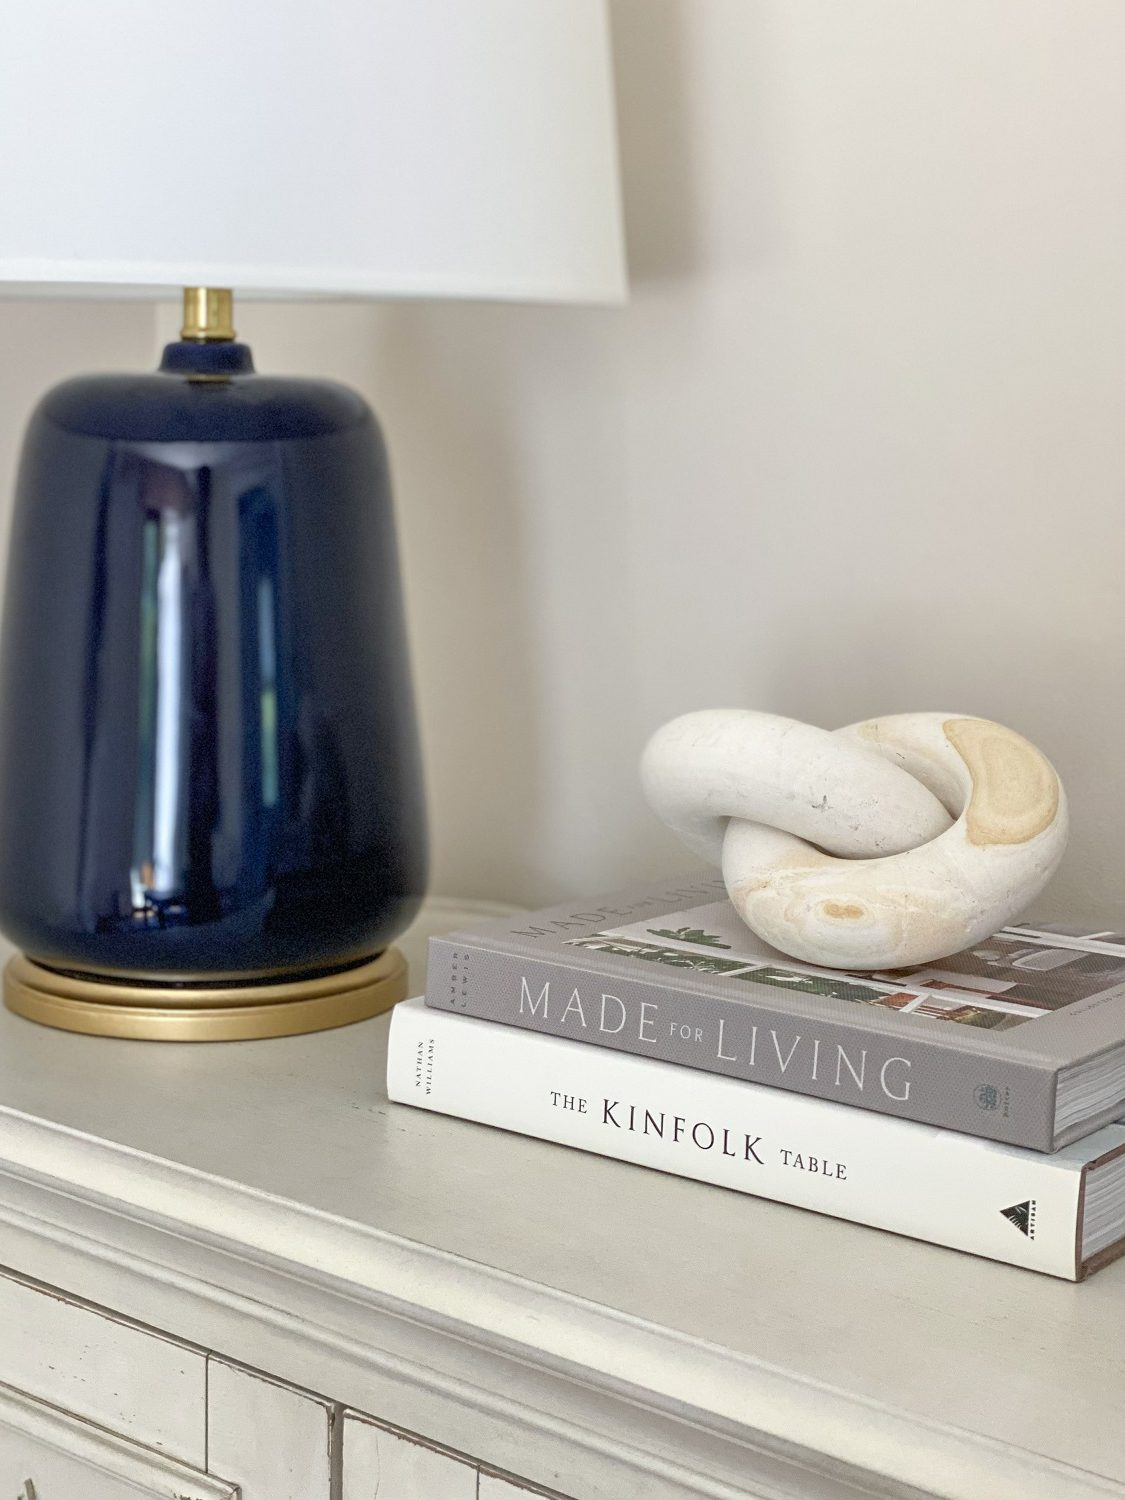 Coastal design with accessories and books